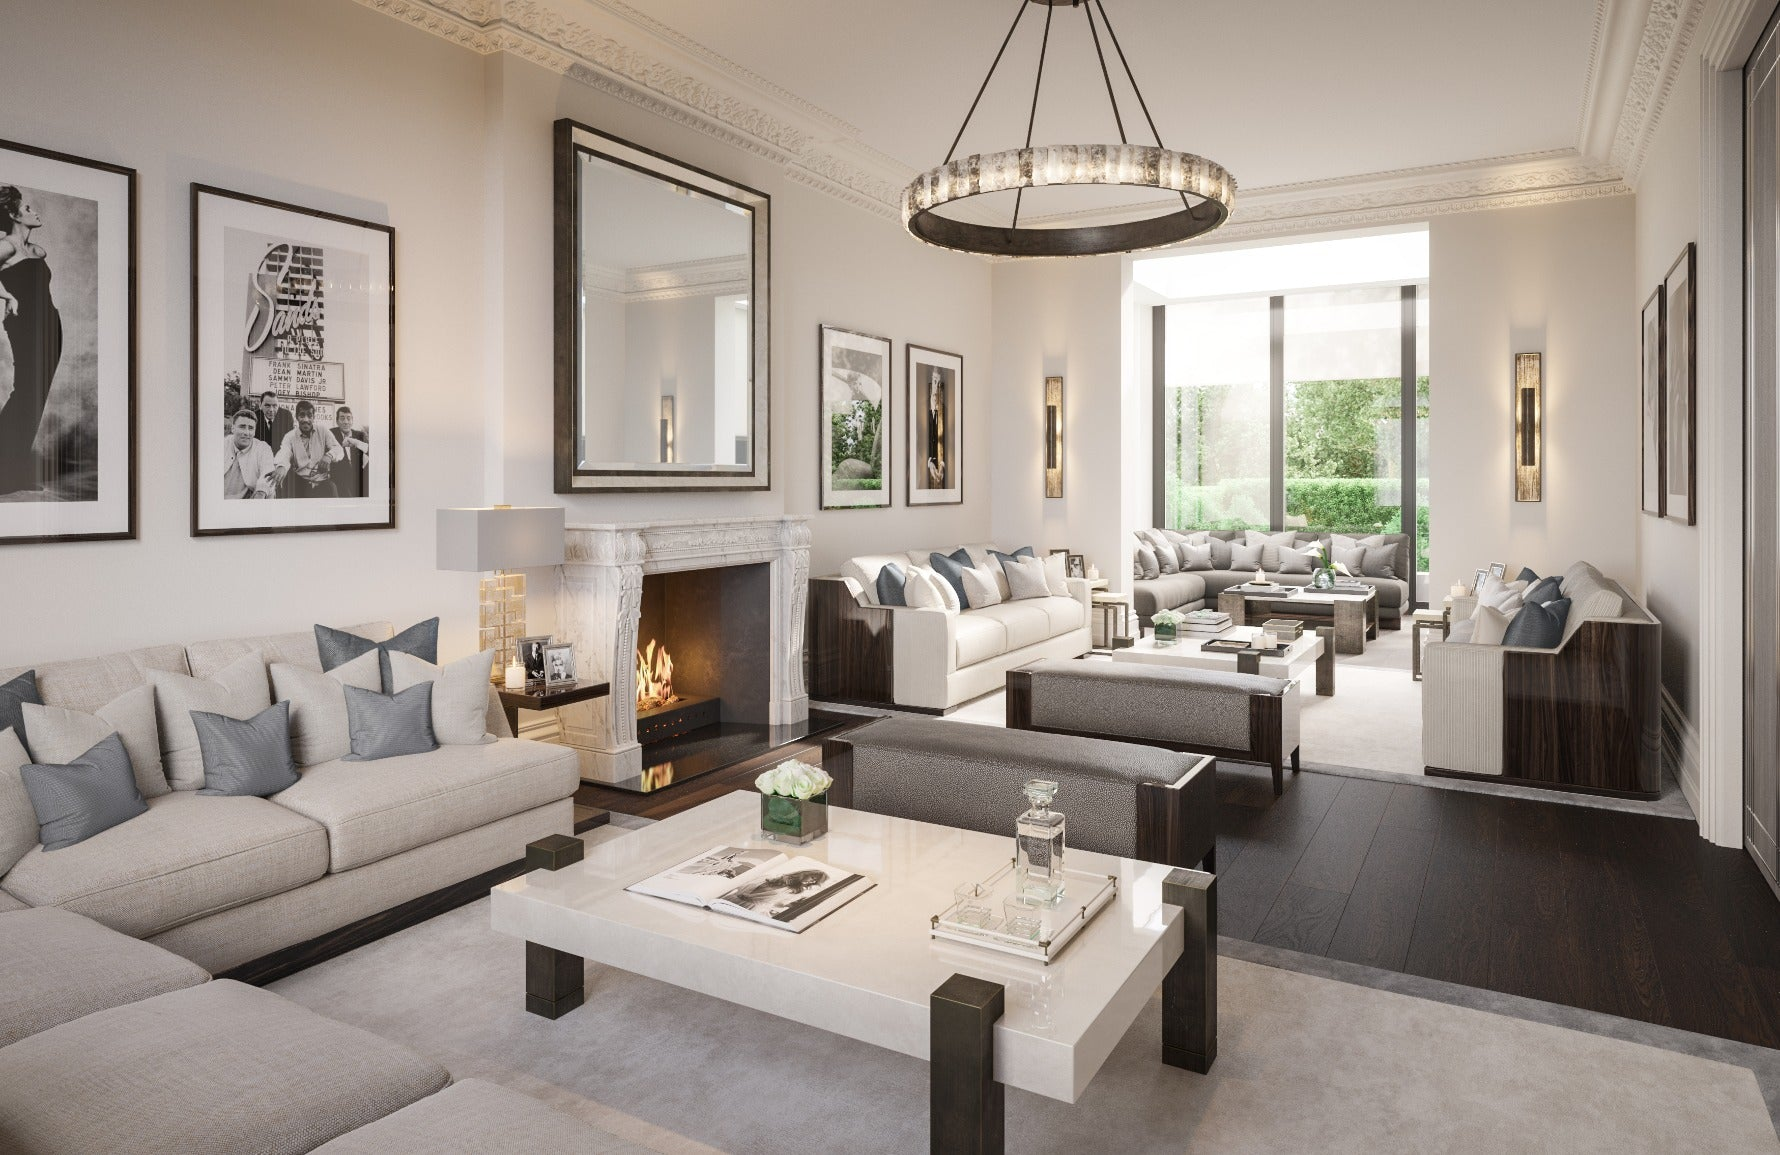 How To Decorate A Large Living Room | Interior by Elicyon | Read more in the LuxDeco.com Style Guide